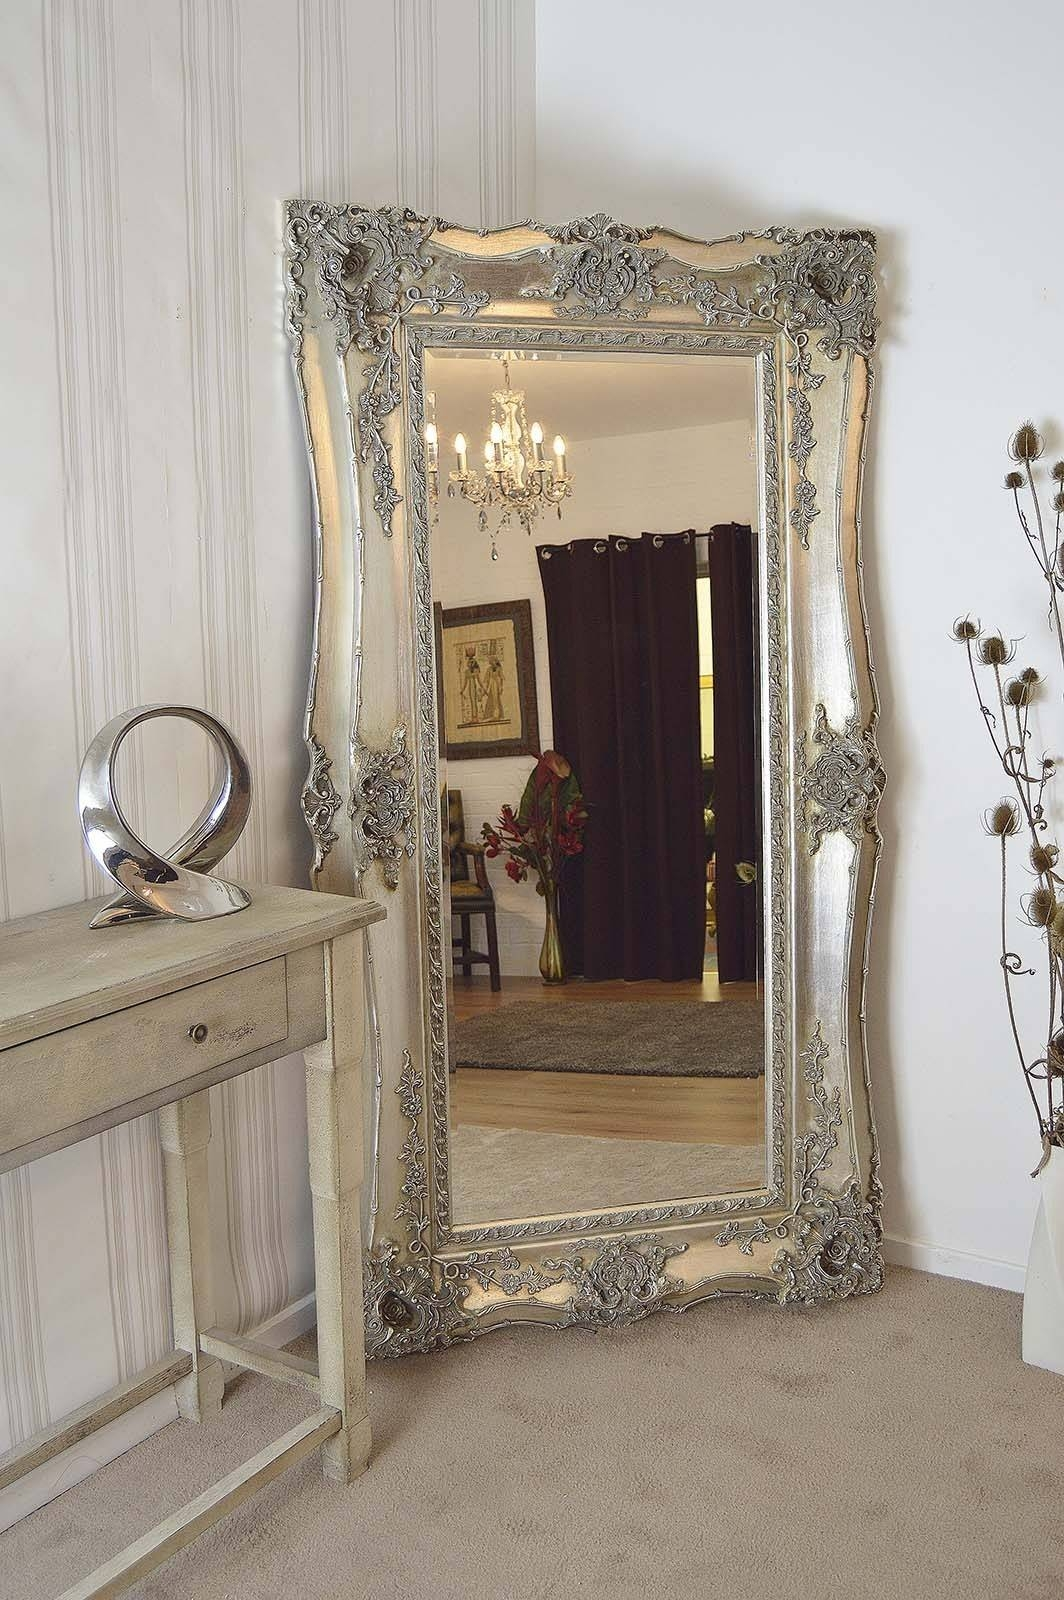 Large Antique Wall Mirror Ornate Frame Antique Ornate Wall Mirrors for Ornate Wall Mirrors (Image 16 of 25)